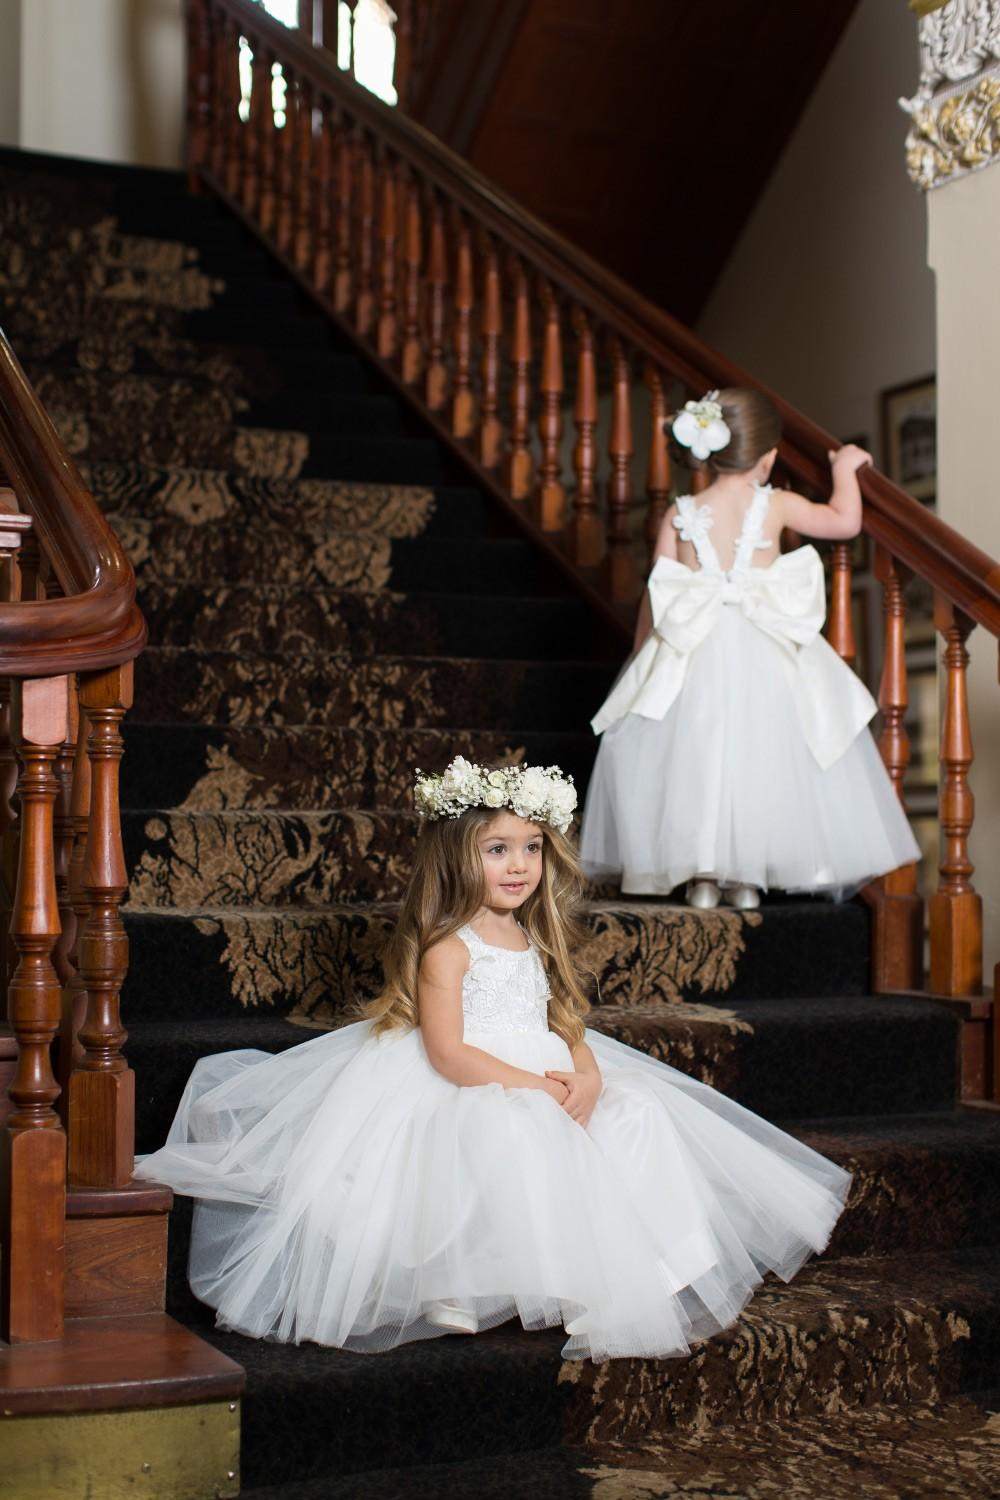 Fabulous toddler wedding dresses wedding photography izmirmasajfo